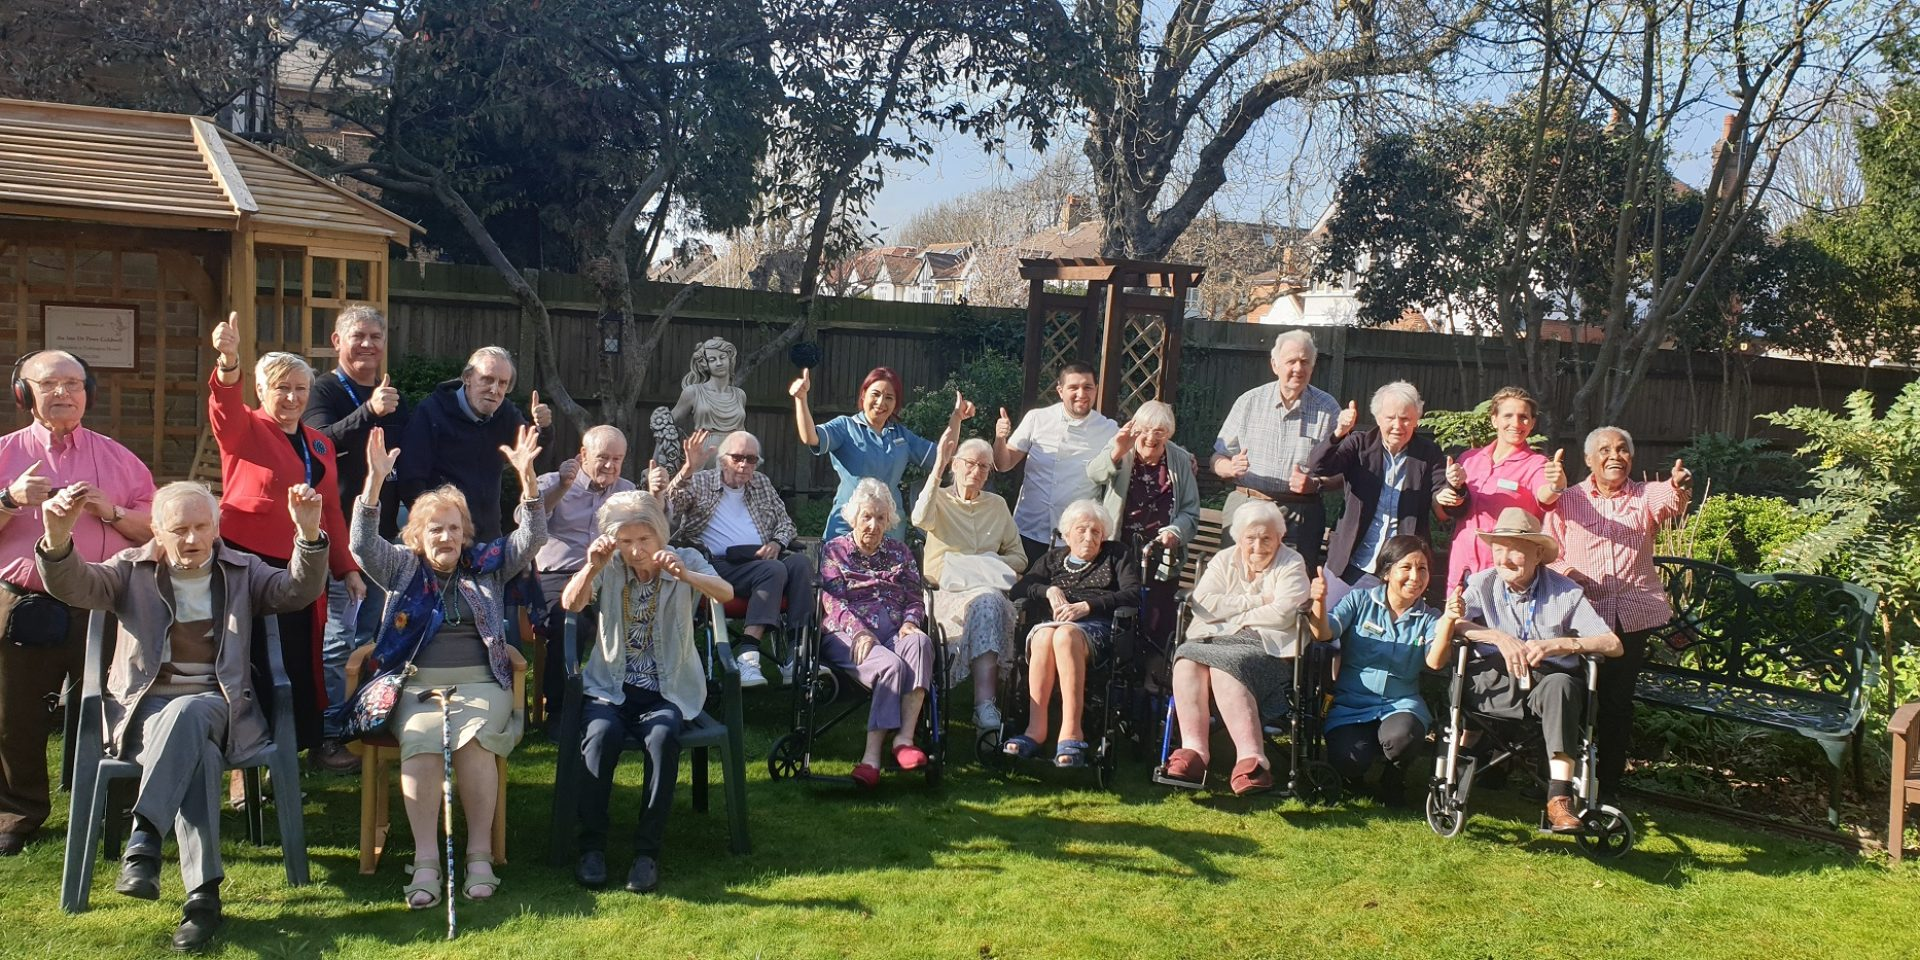 Torkington House named third best care home in UK